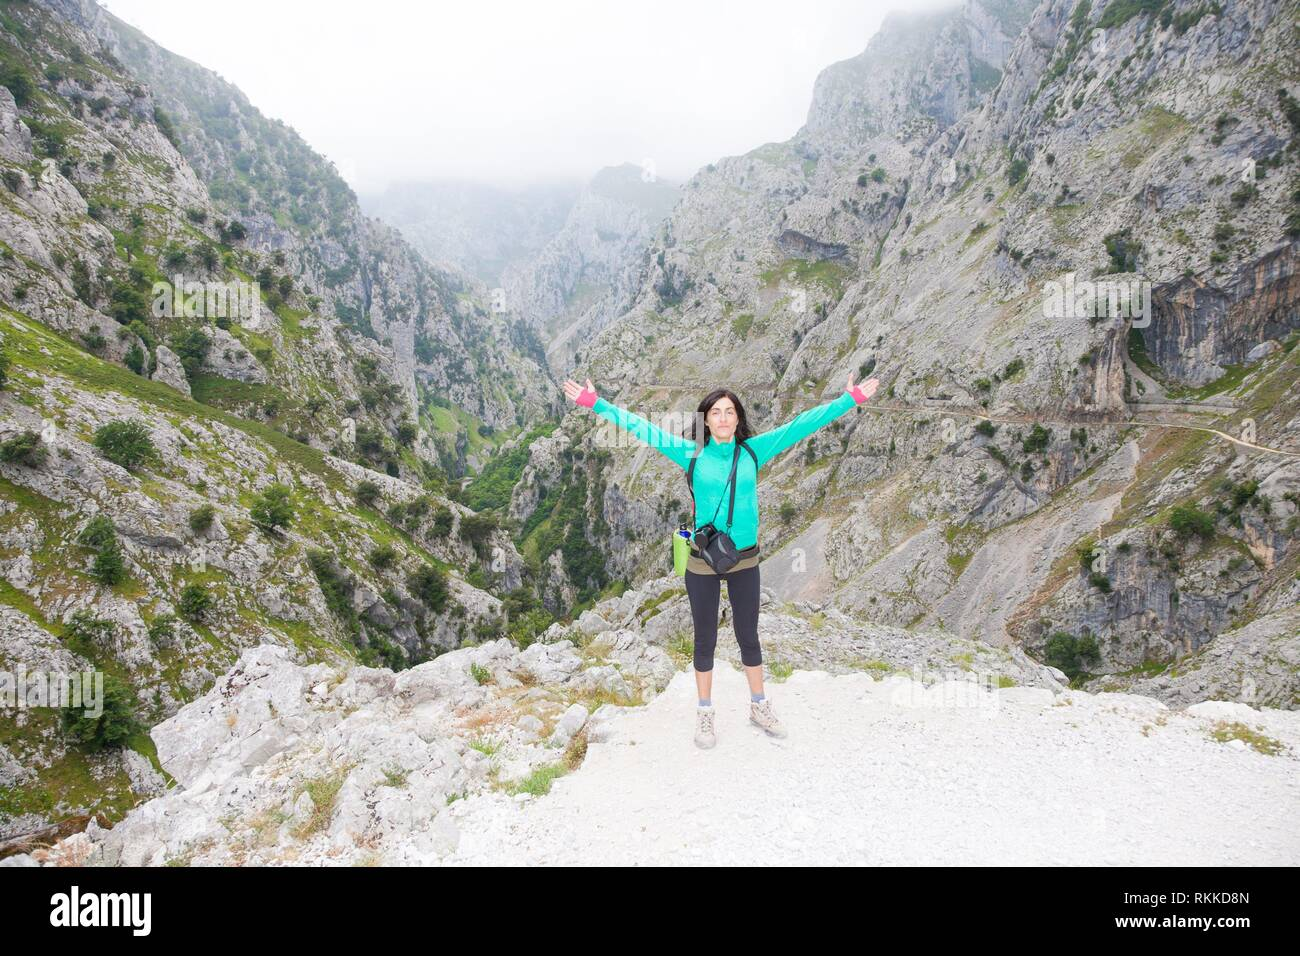 brunette sport hiking or trekking woman with open arms outstretching posing looking at Gorge of Cares River, in mountain Picos de Europa natural park - Stock Image